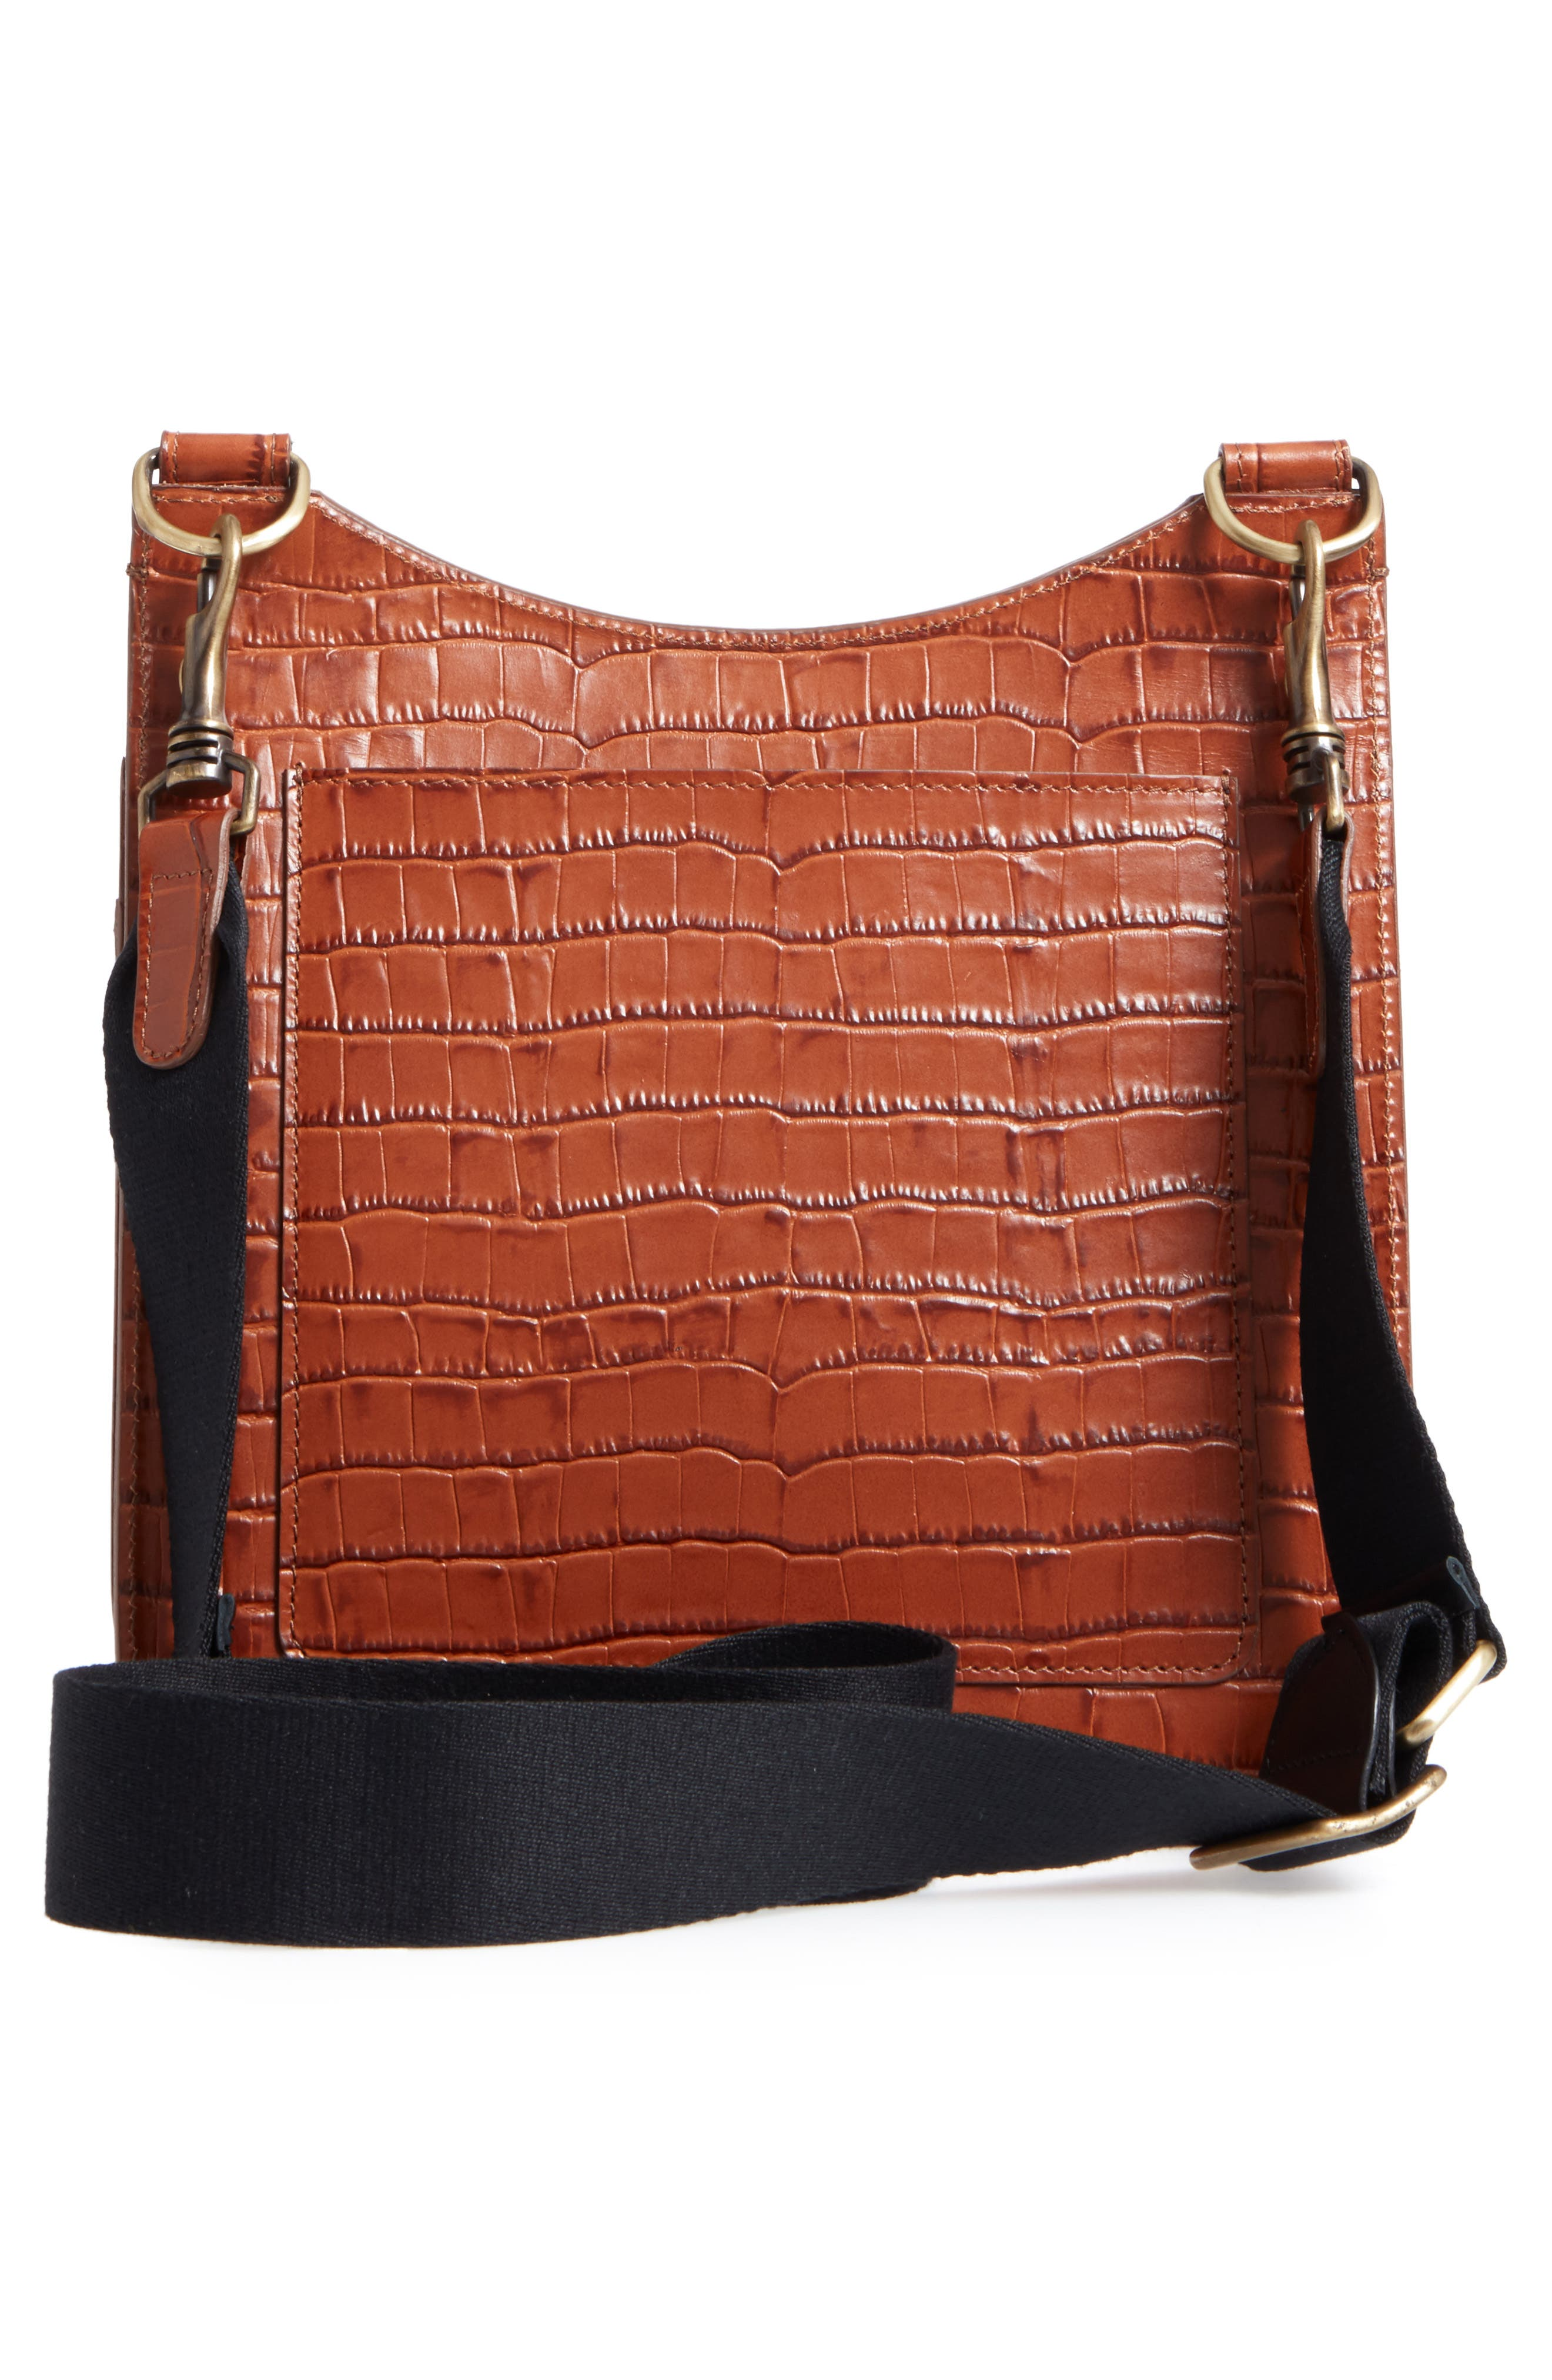 Tall Equestrian Croc Embossed Leather Crossbody Bag,                             Alternate thumbnail 3, color,                             Caramel